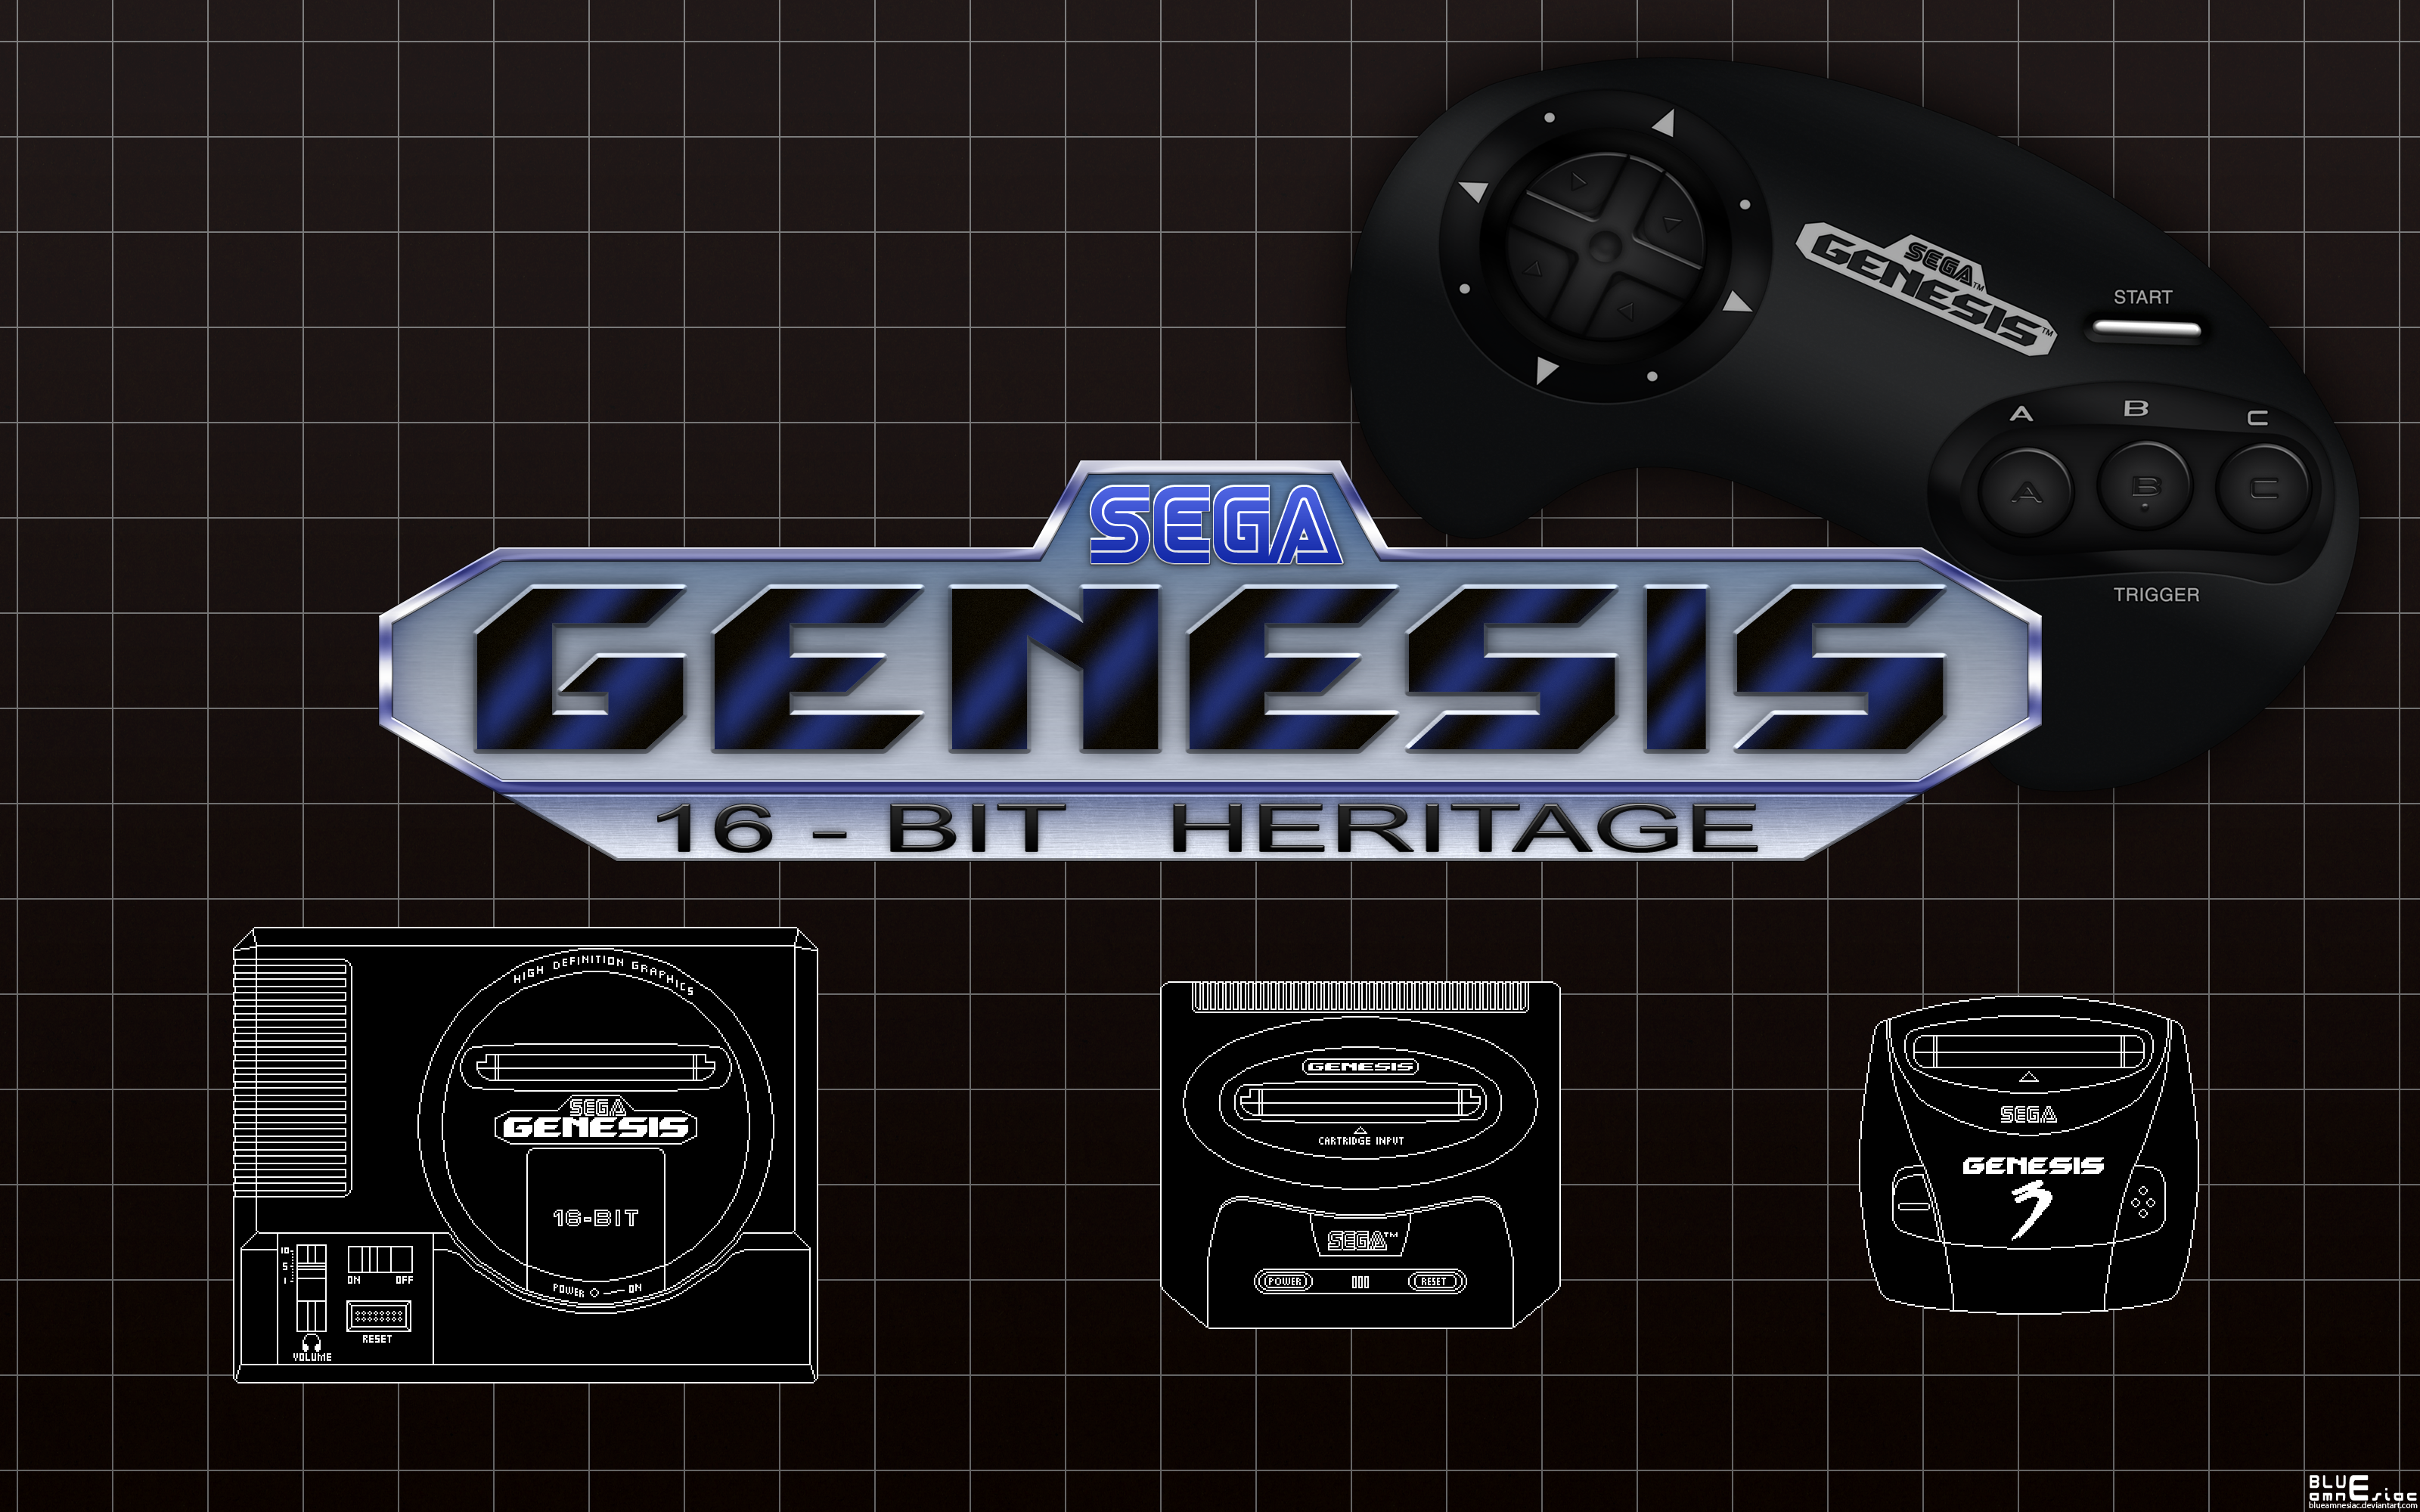 Sega Genesis: 16-bit Heritage Wallpaper by BLUEamnesiac